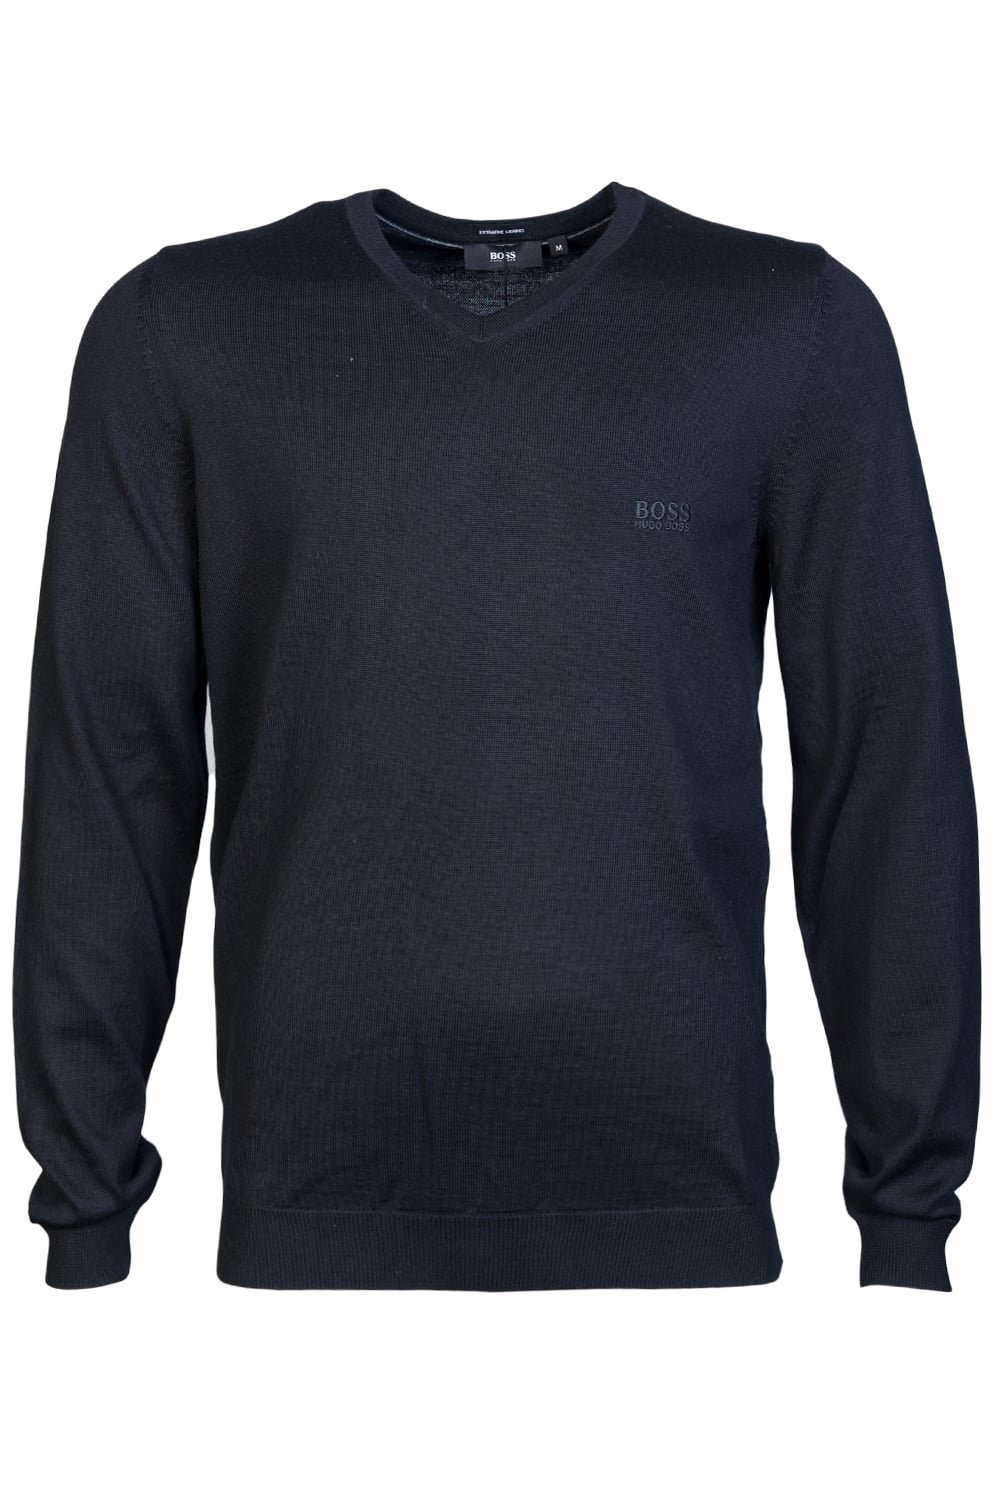 Boss Baram-L Knitwear in Black XL by Hugo Boss